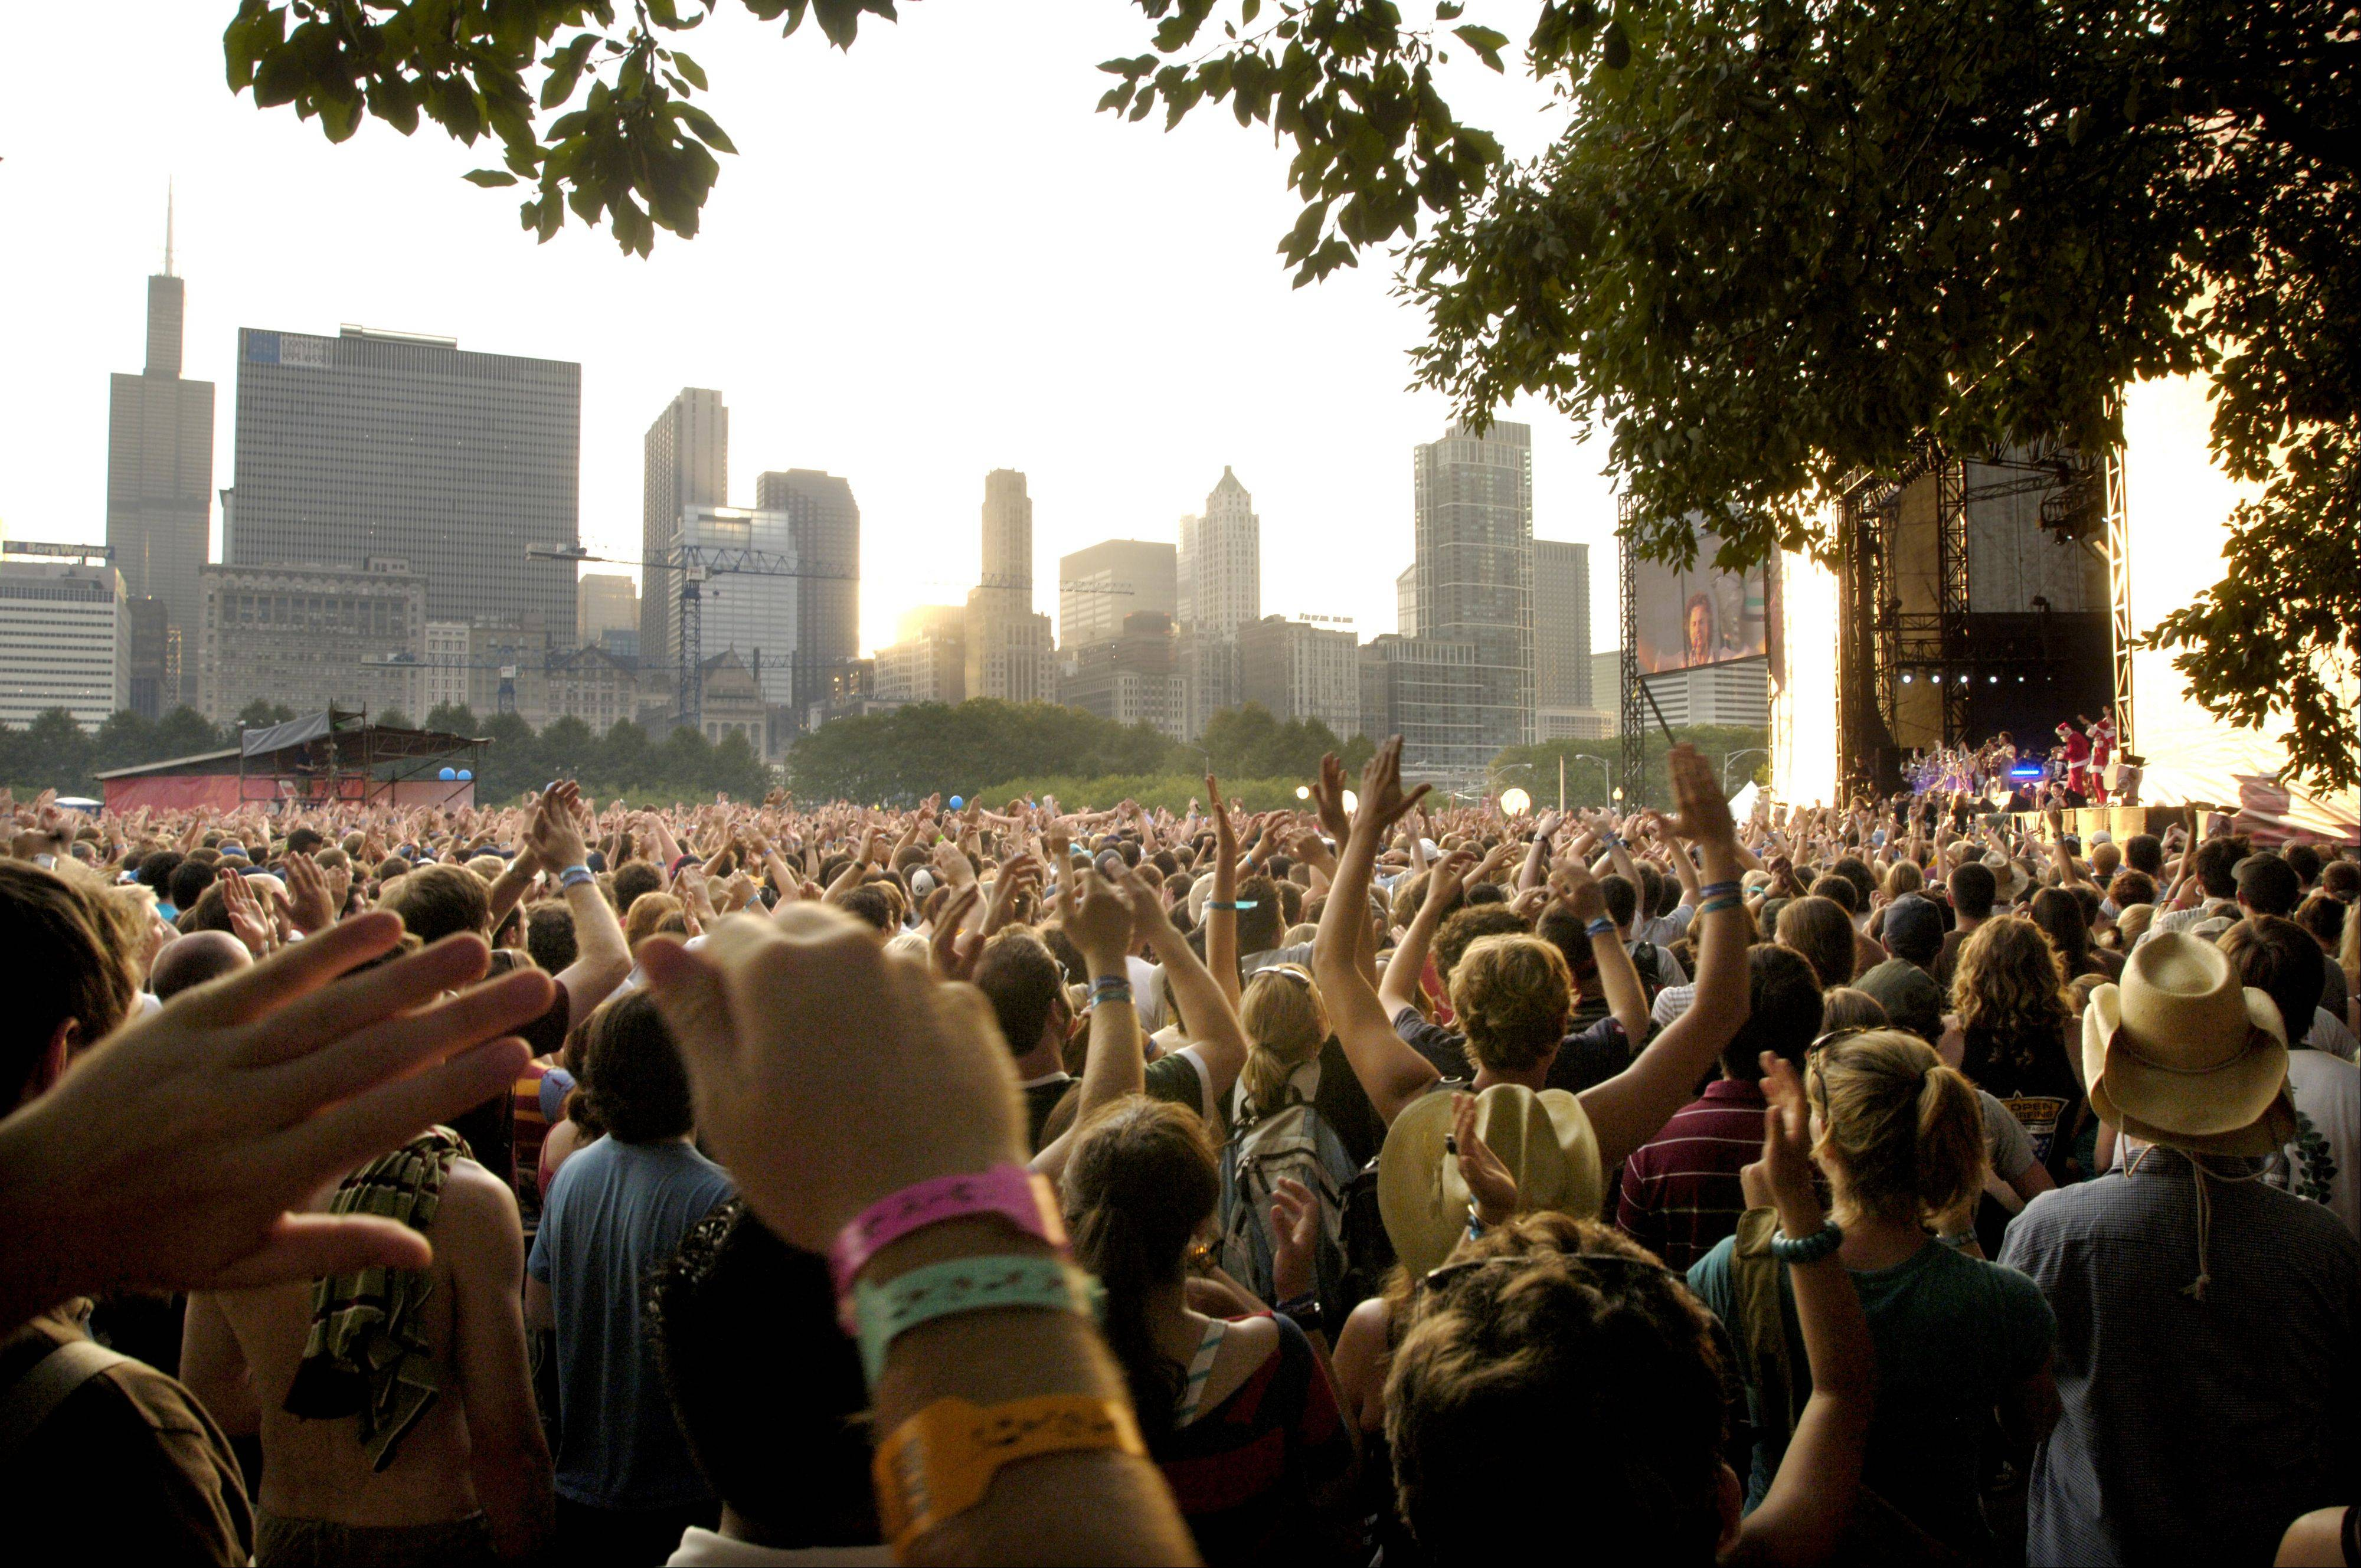 The students will be part of ThinkChicago: Lollapalooza. The event will allow the students to attend the music festival as well as a series of workshops designed to showcase Chicago as a hub of innovation,